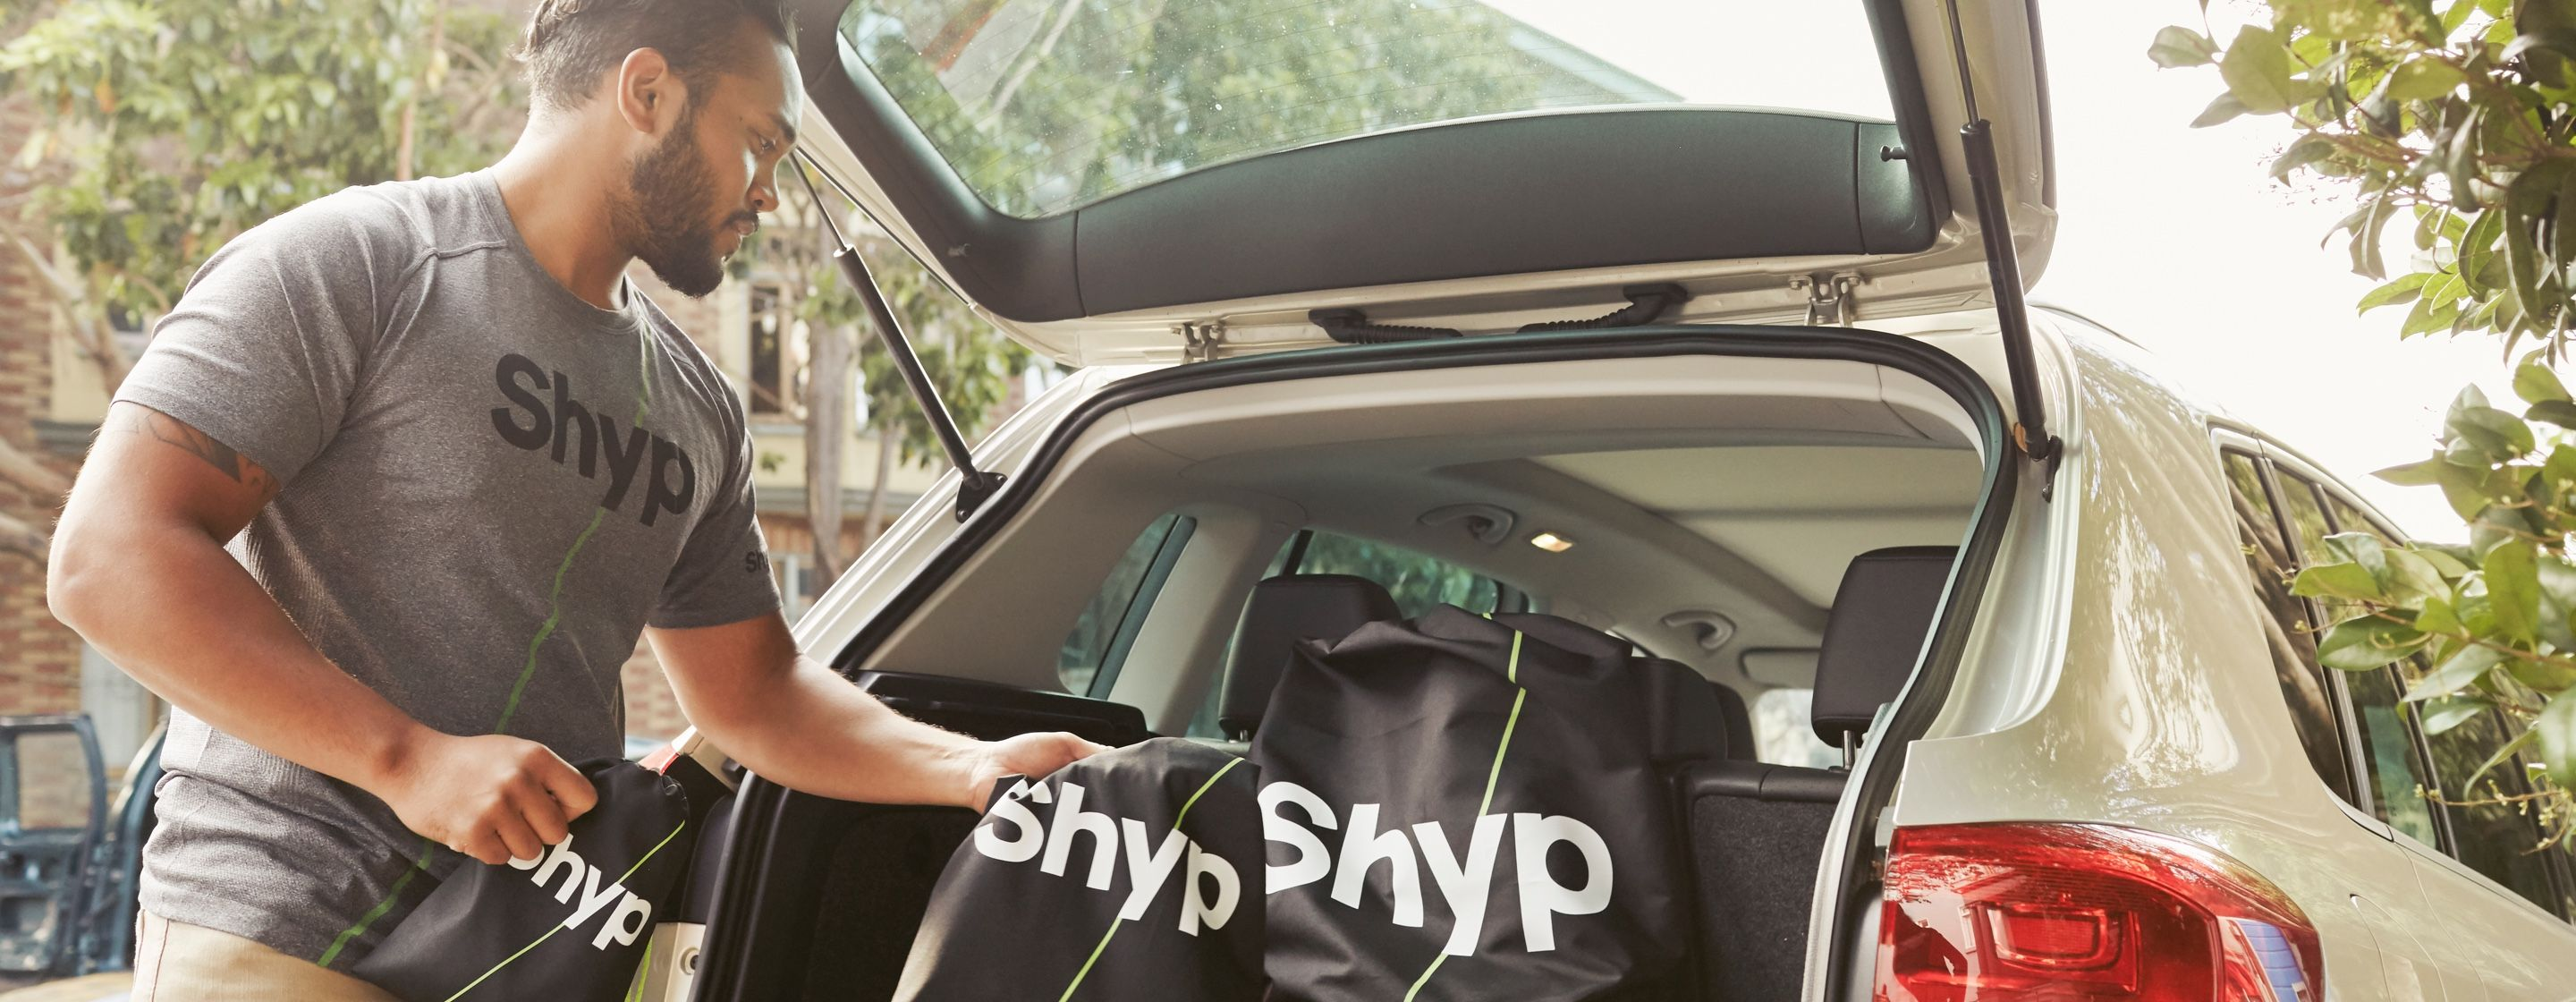 Shyp Couriers are the women and men who arrive at the tap of a button to pick up what you want to send. Apply now to be the hero of Shyp's story.